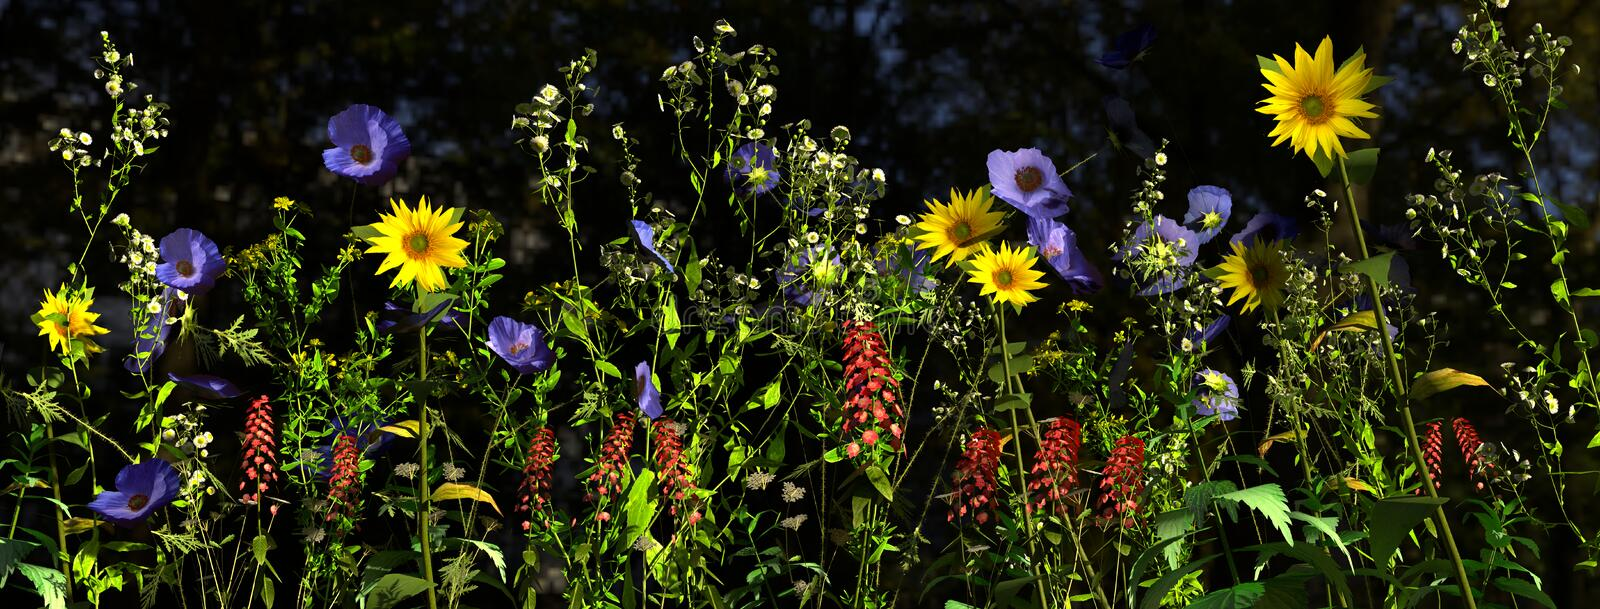 Wildflowers in direct sunlight in a field royalty free stock photo